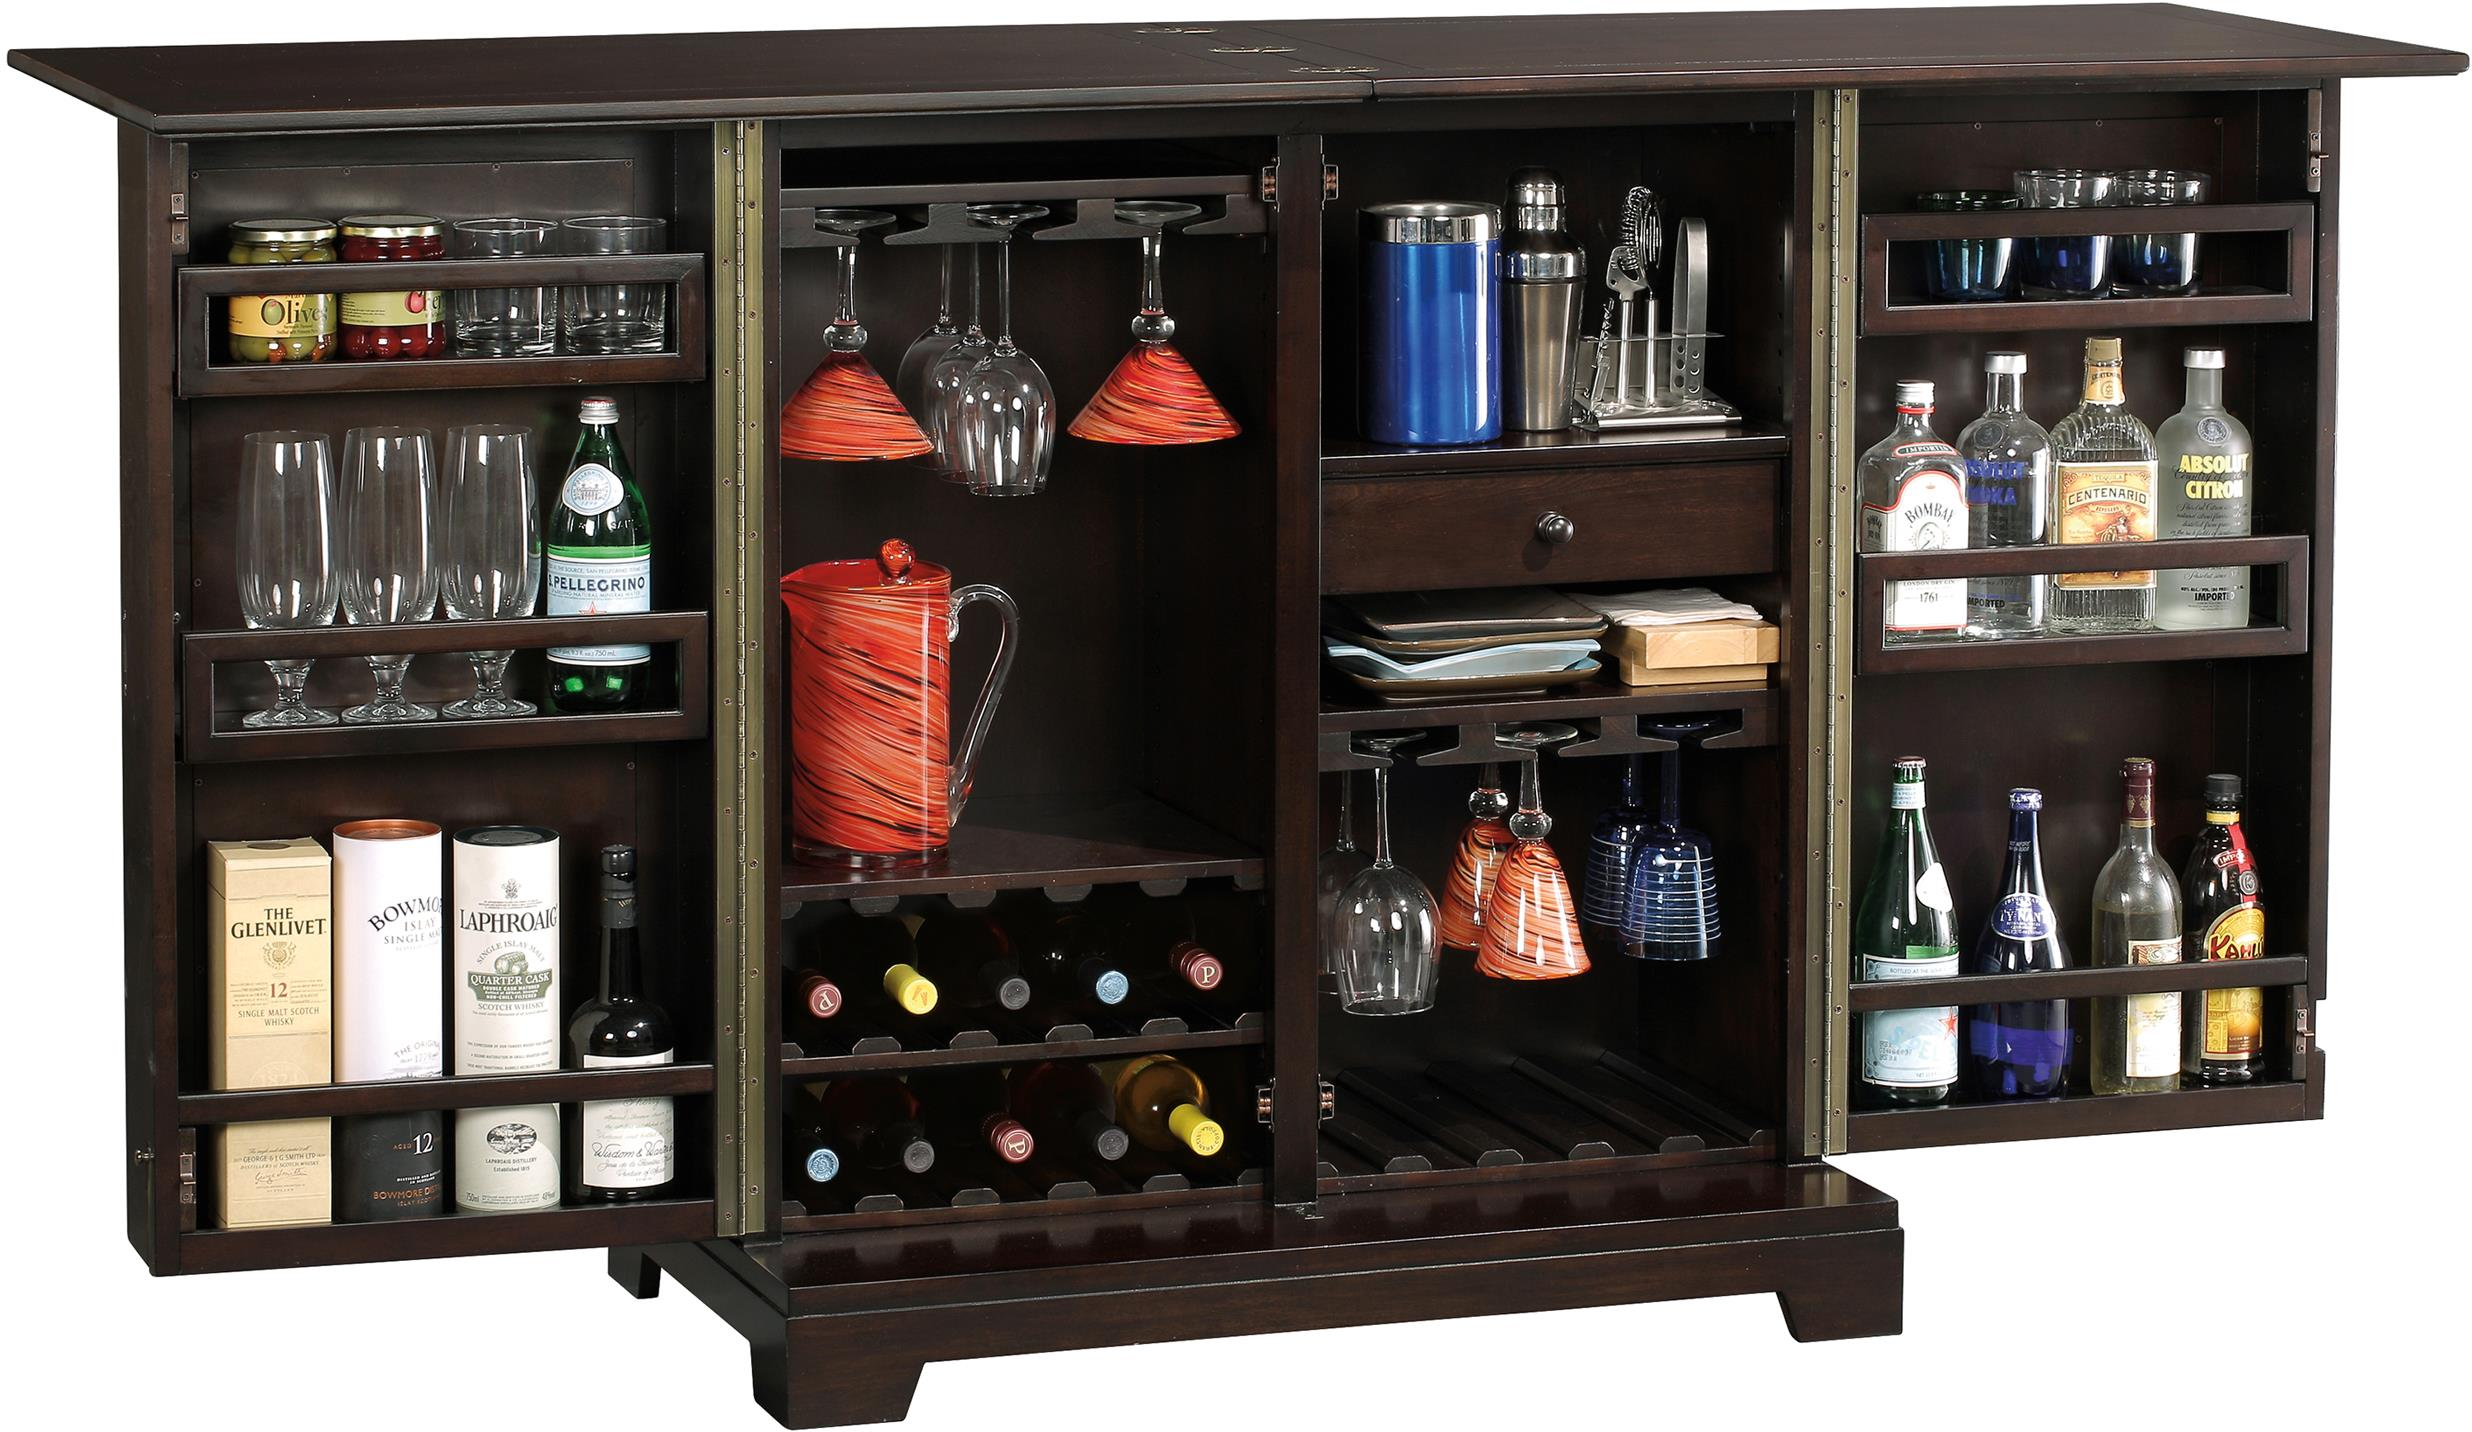 Howard miller wine bar furnishings barolo cabinet Wine bar furniture